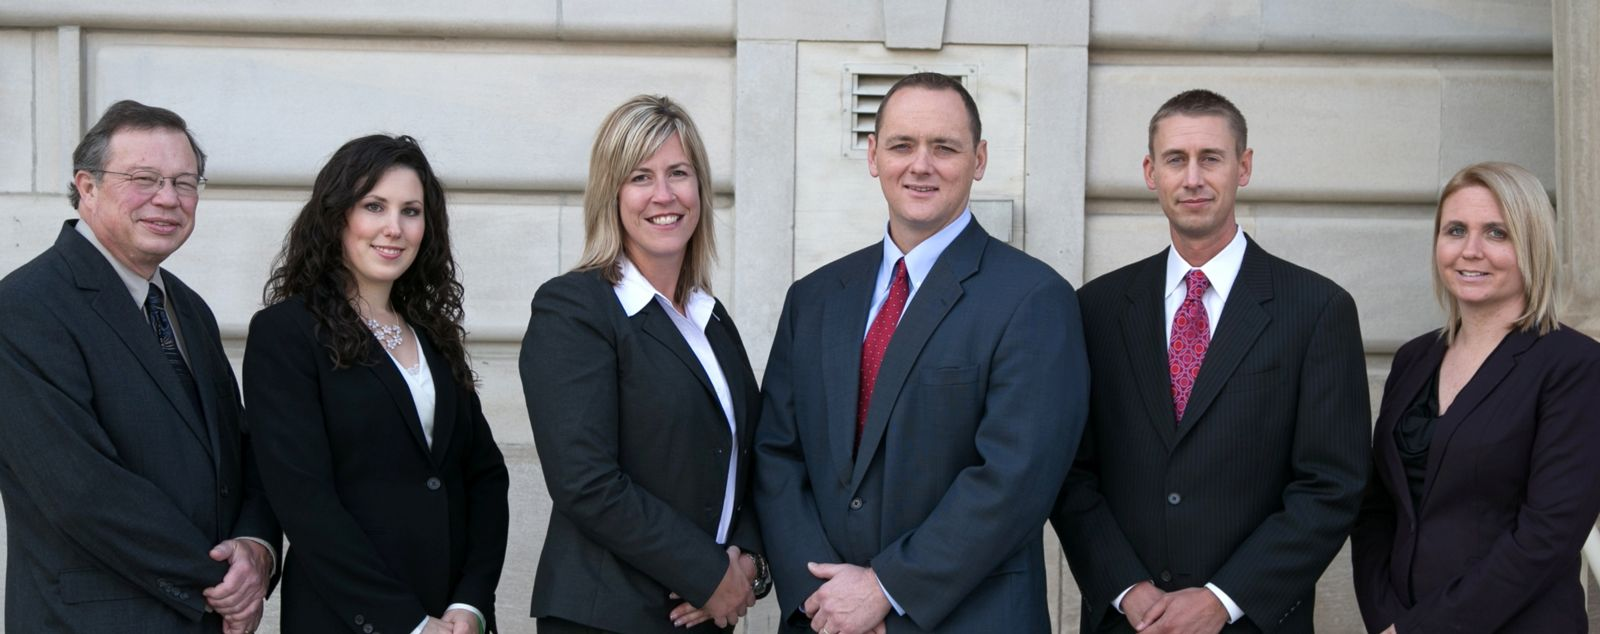 Walker, Billingsley & Bair Legal Team in front of the courthouse